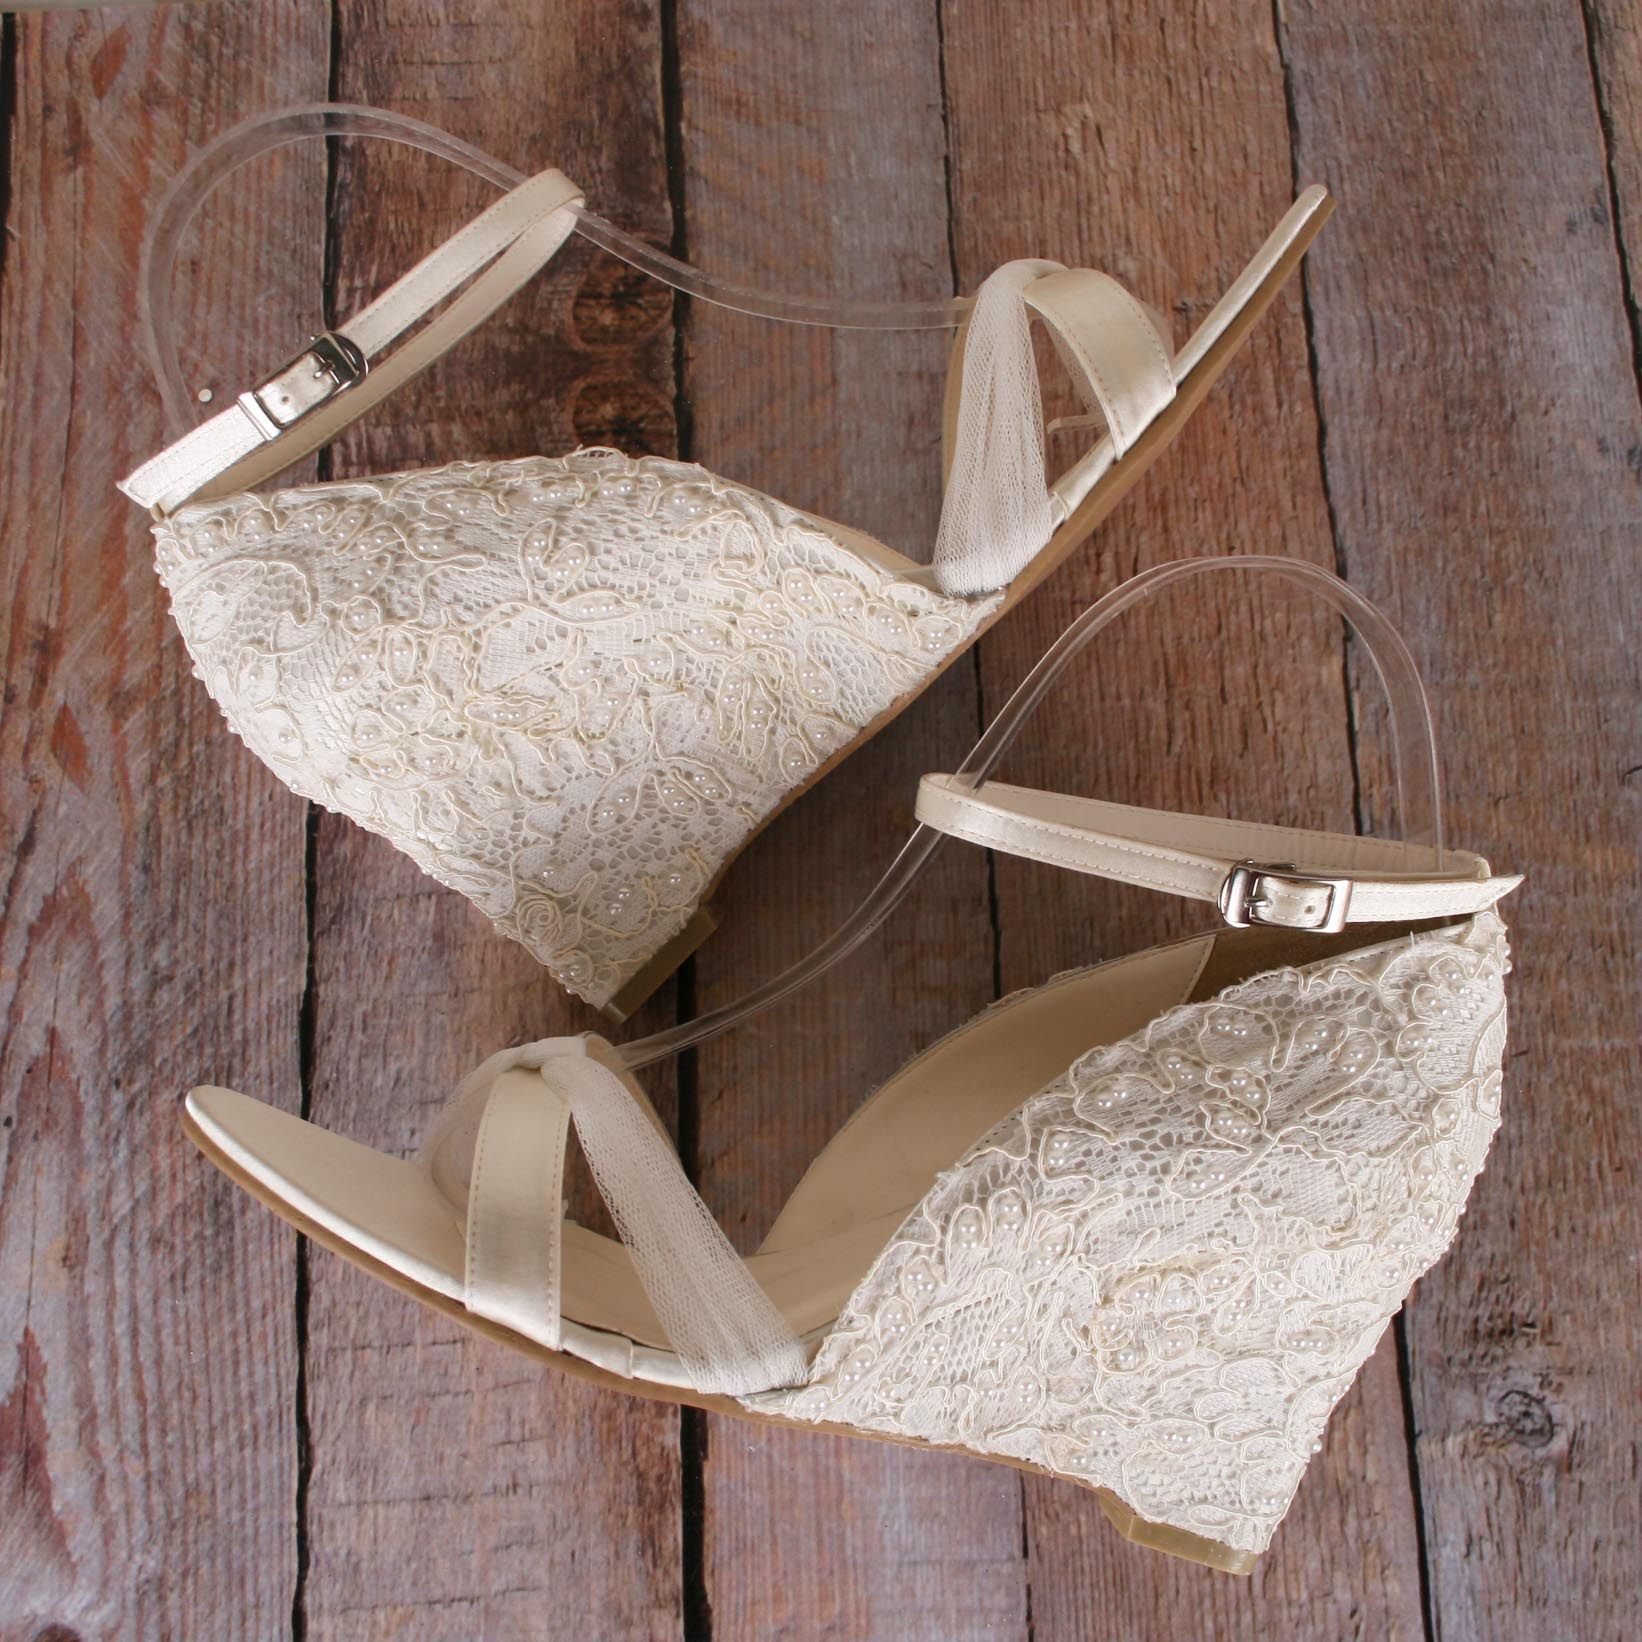 ivory wedges lace wedding shoes lace wedges ivory lace shoes lace wedding